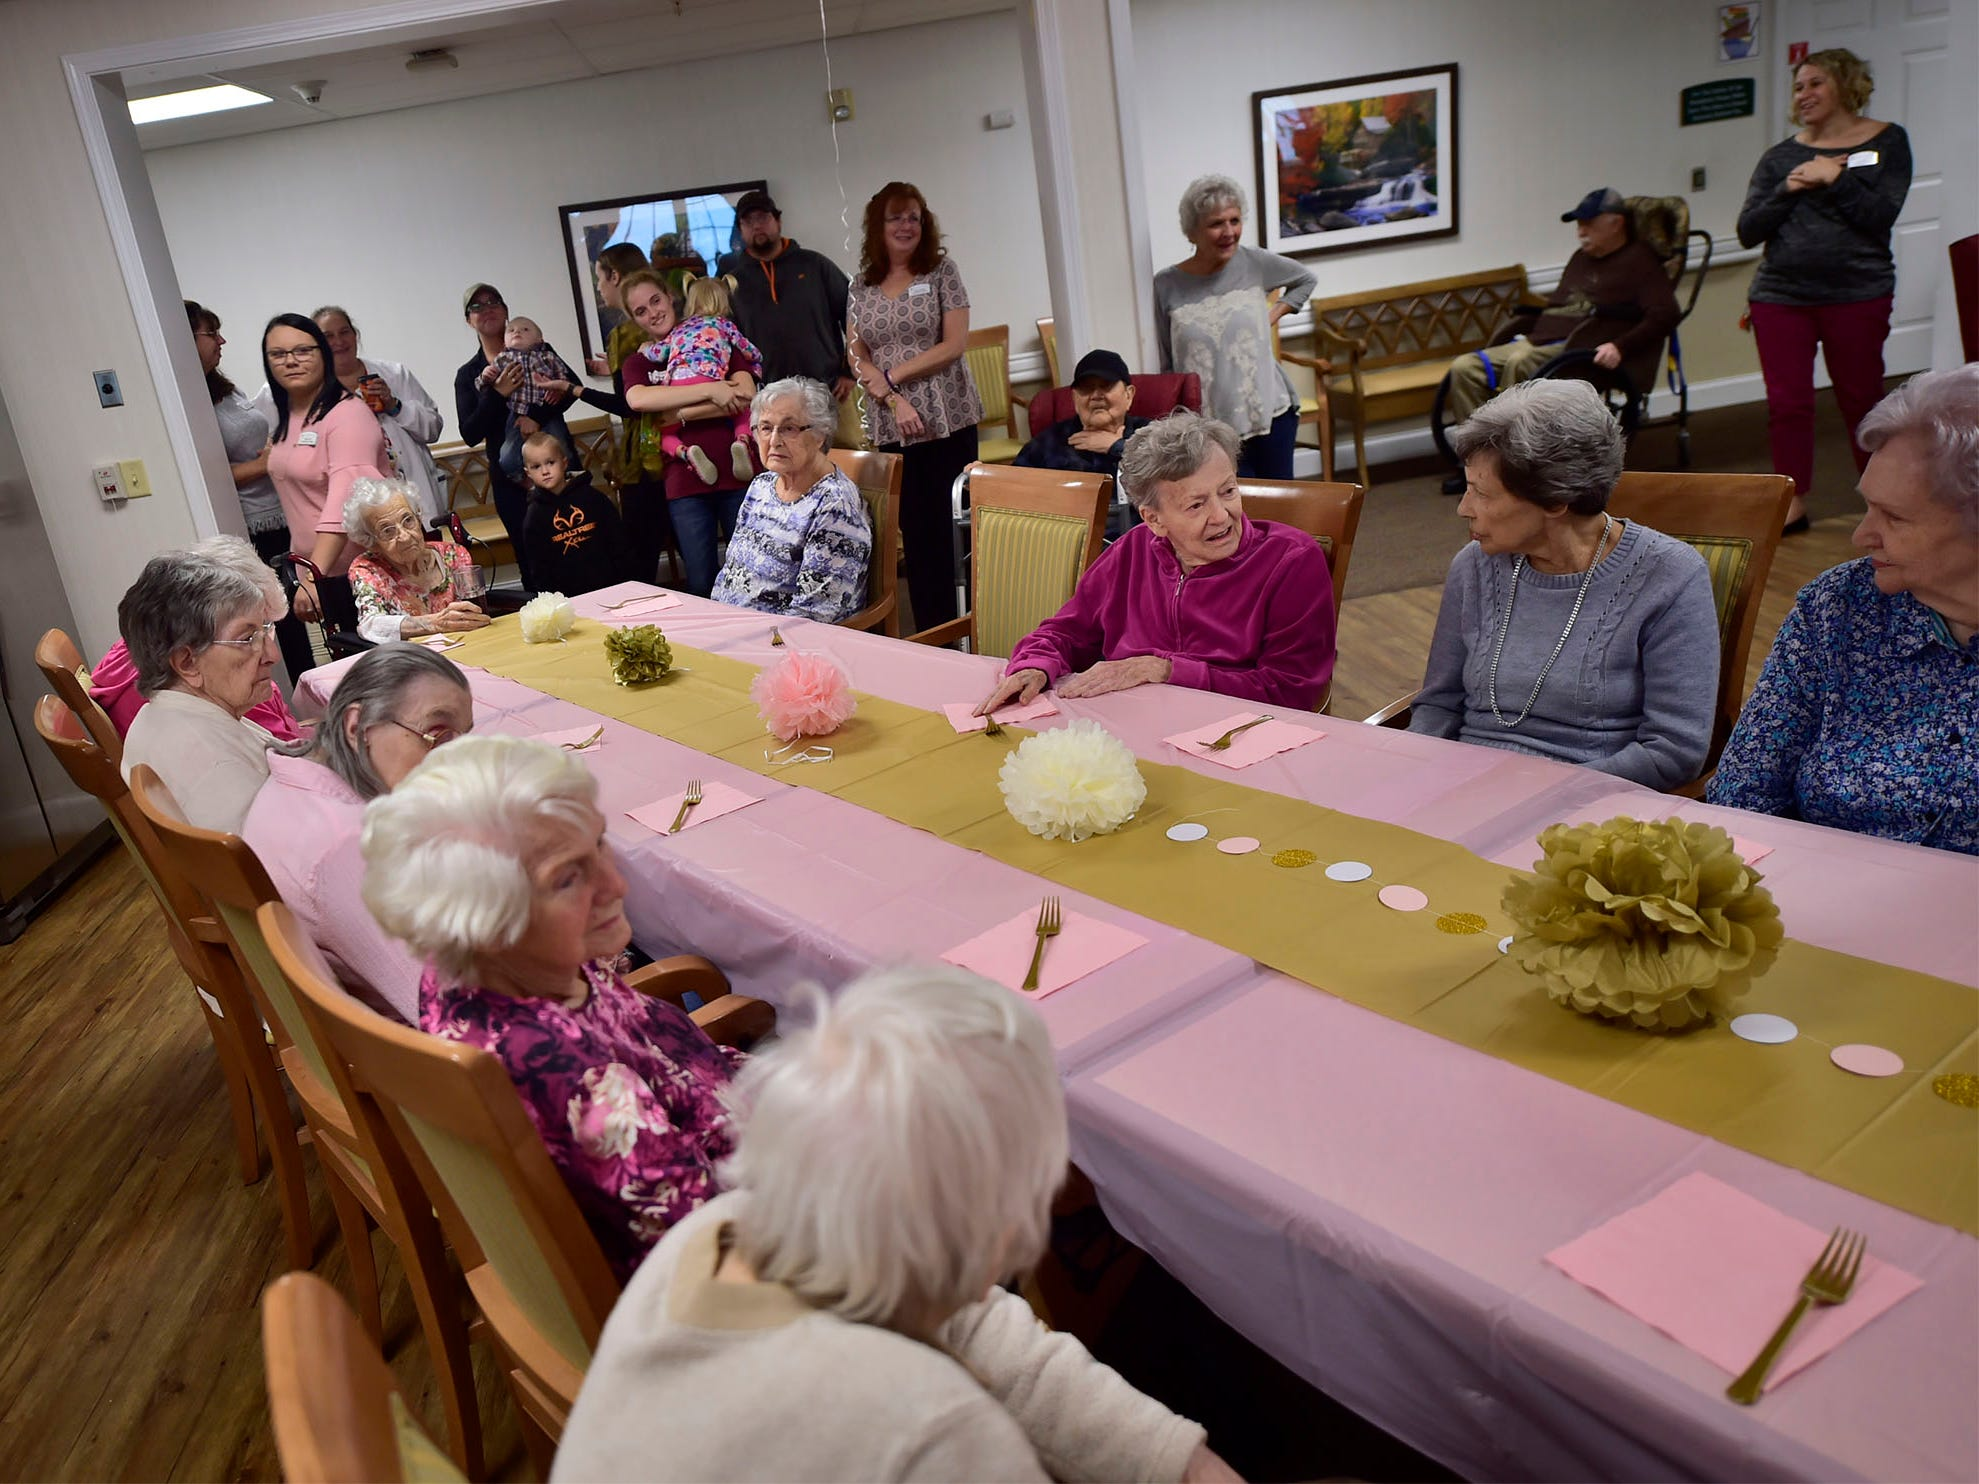 Friends and family attend a birthday party for 103-year-old Lillian Hoff on Monday, September 10, 2018 at Providence Place, Chambersburg. Hoff, a homemaker,  was born in 1915 in Akron, OH, and raised her three children in Cleveland. Family, staff and their children attended the party in the facility's terrace.